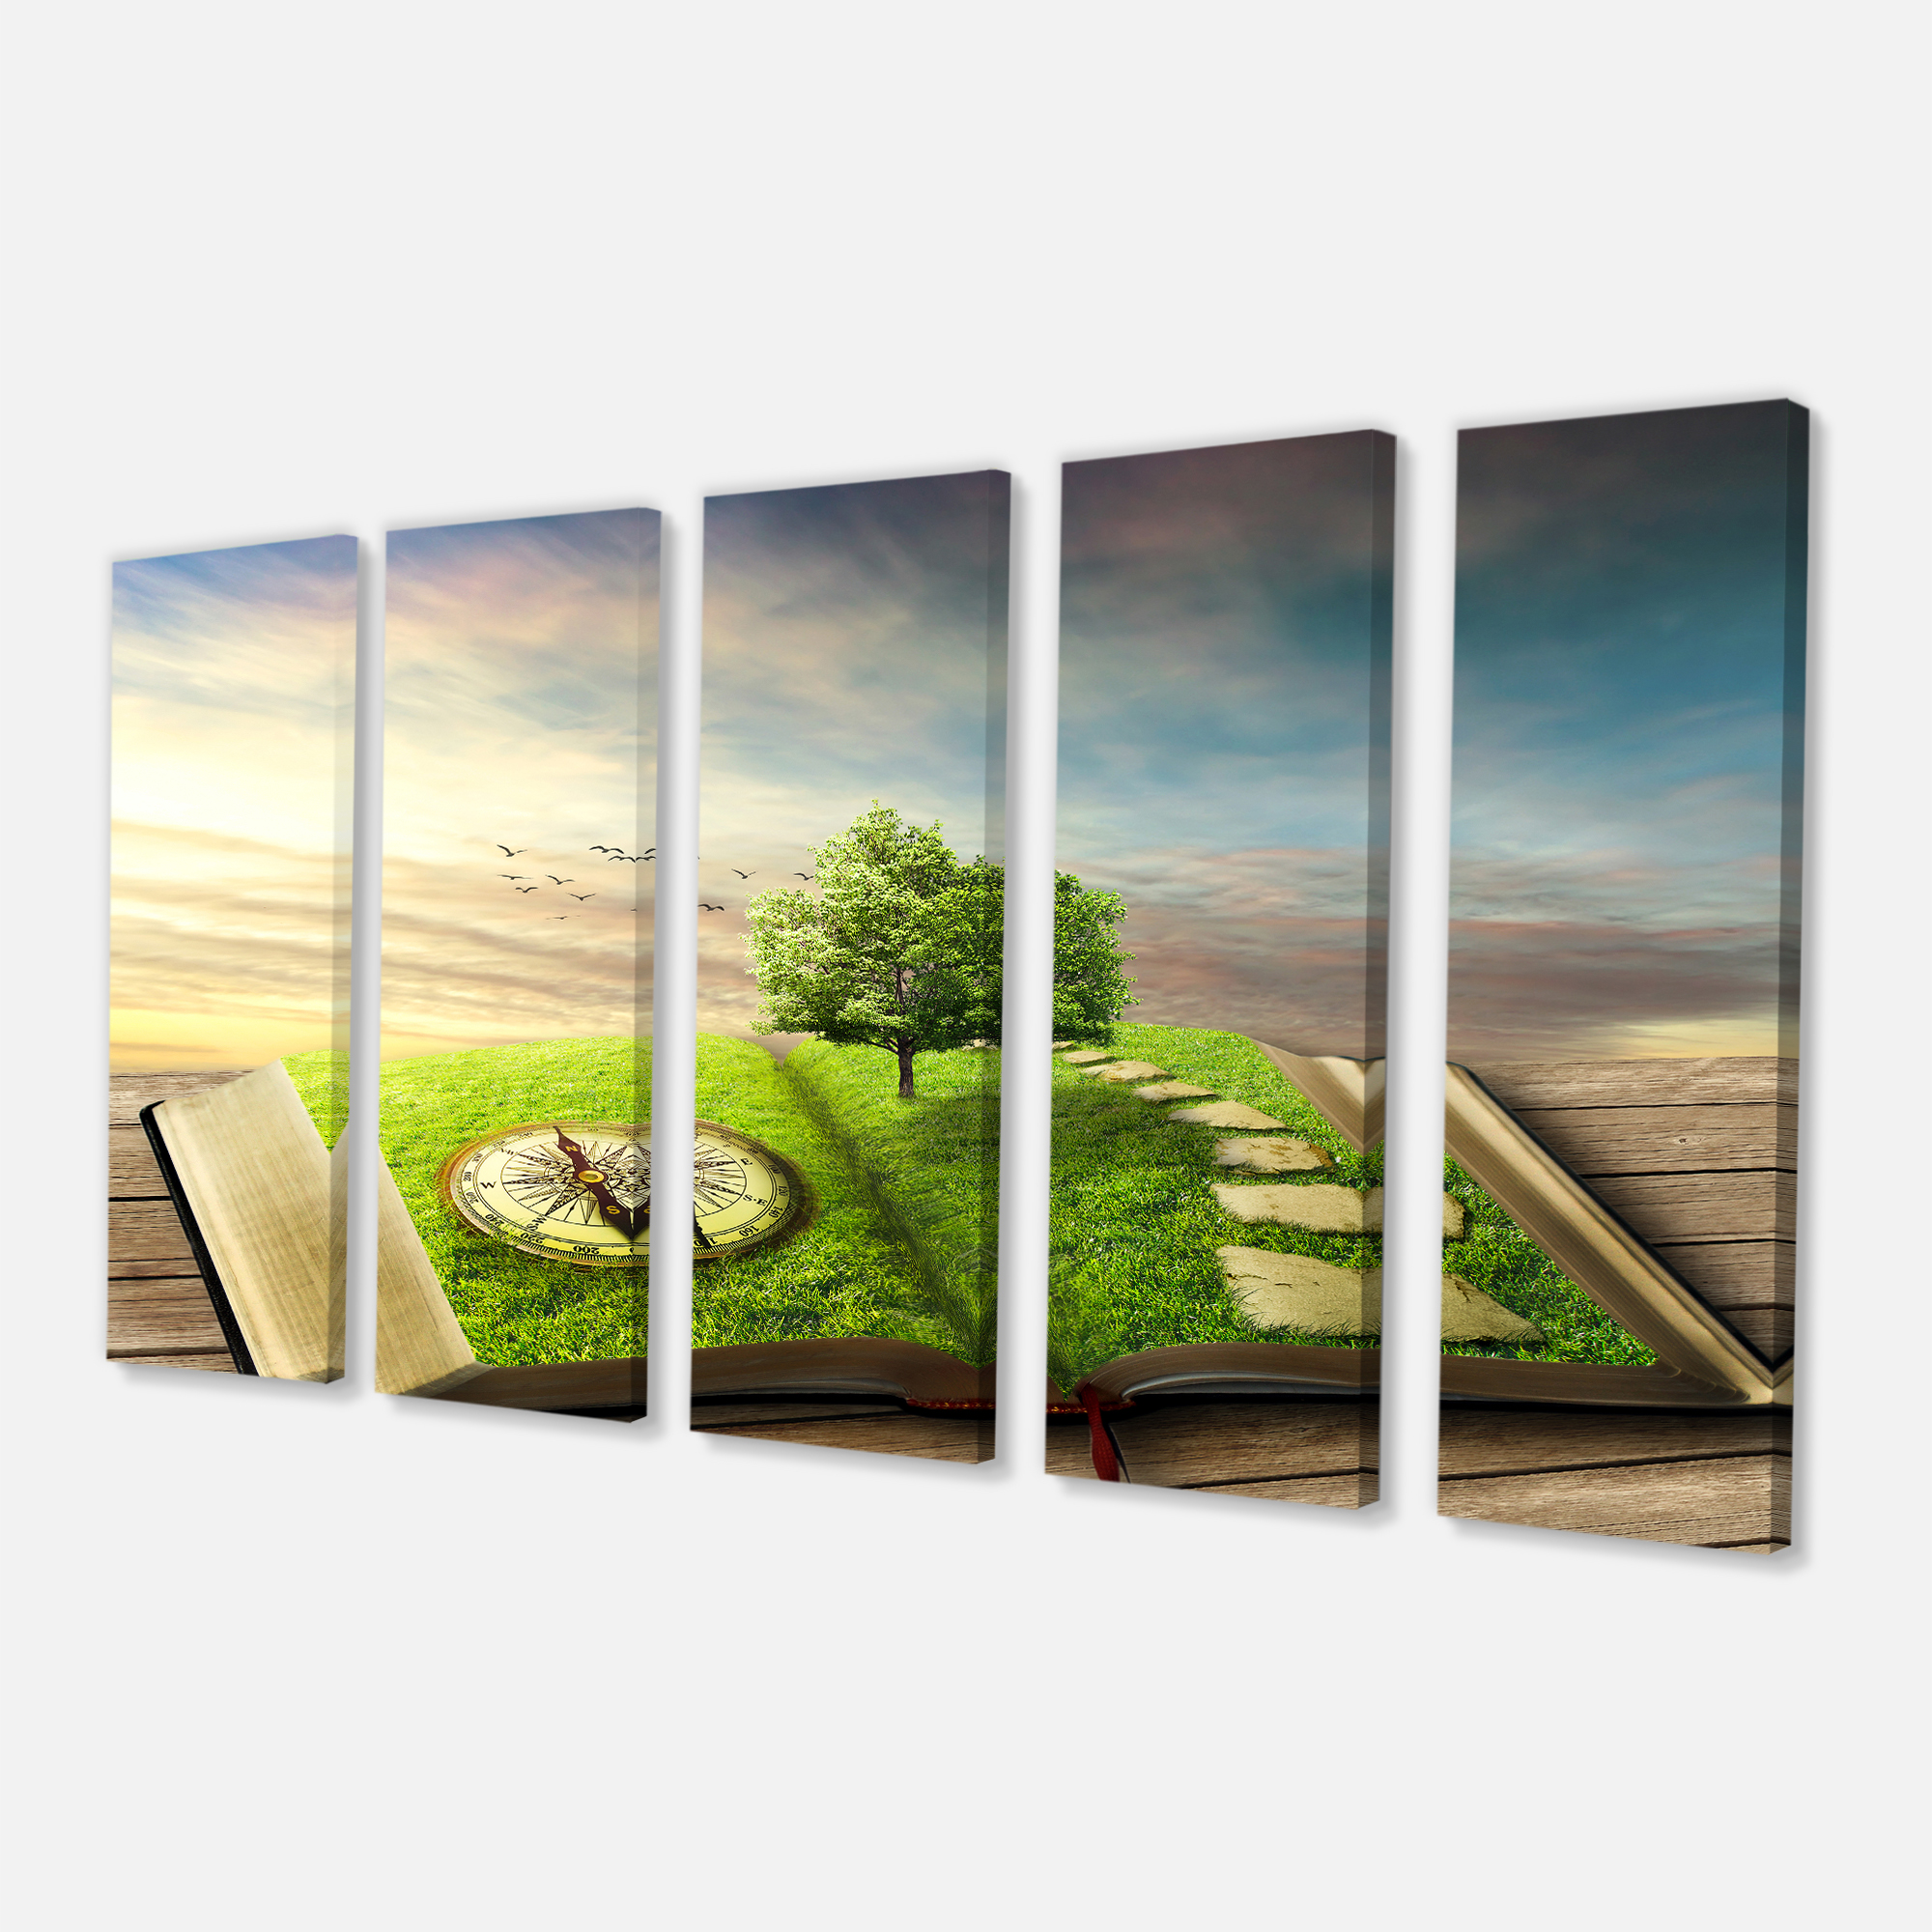 Book of Life with Greenery - Landscape Canvas Art Print - image 2 de 3